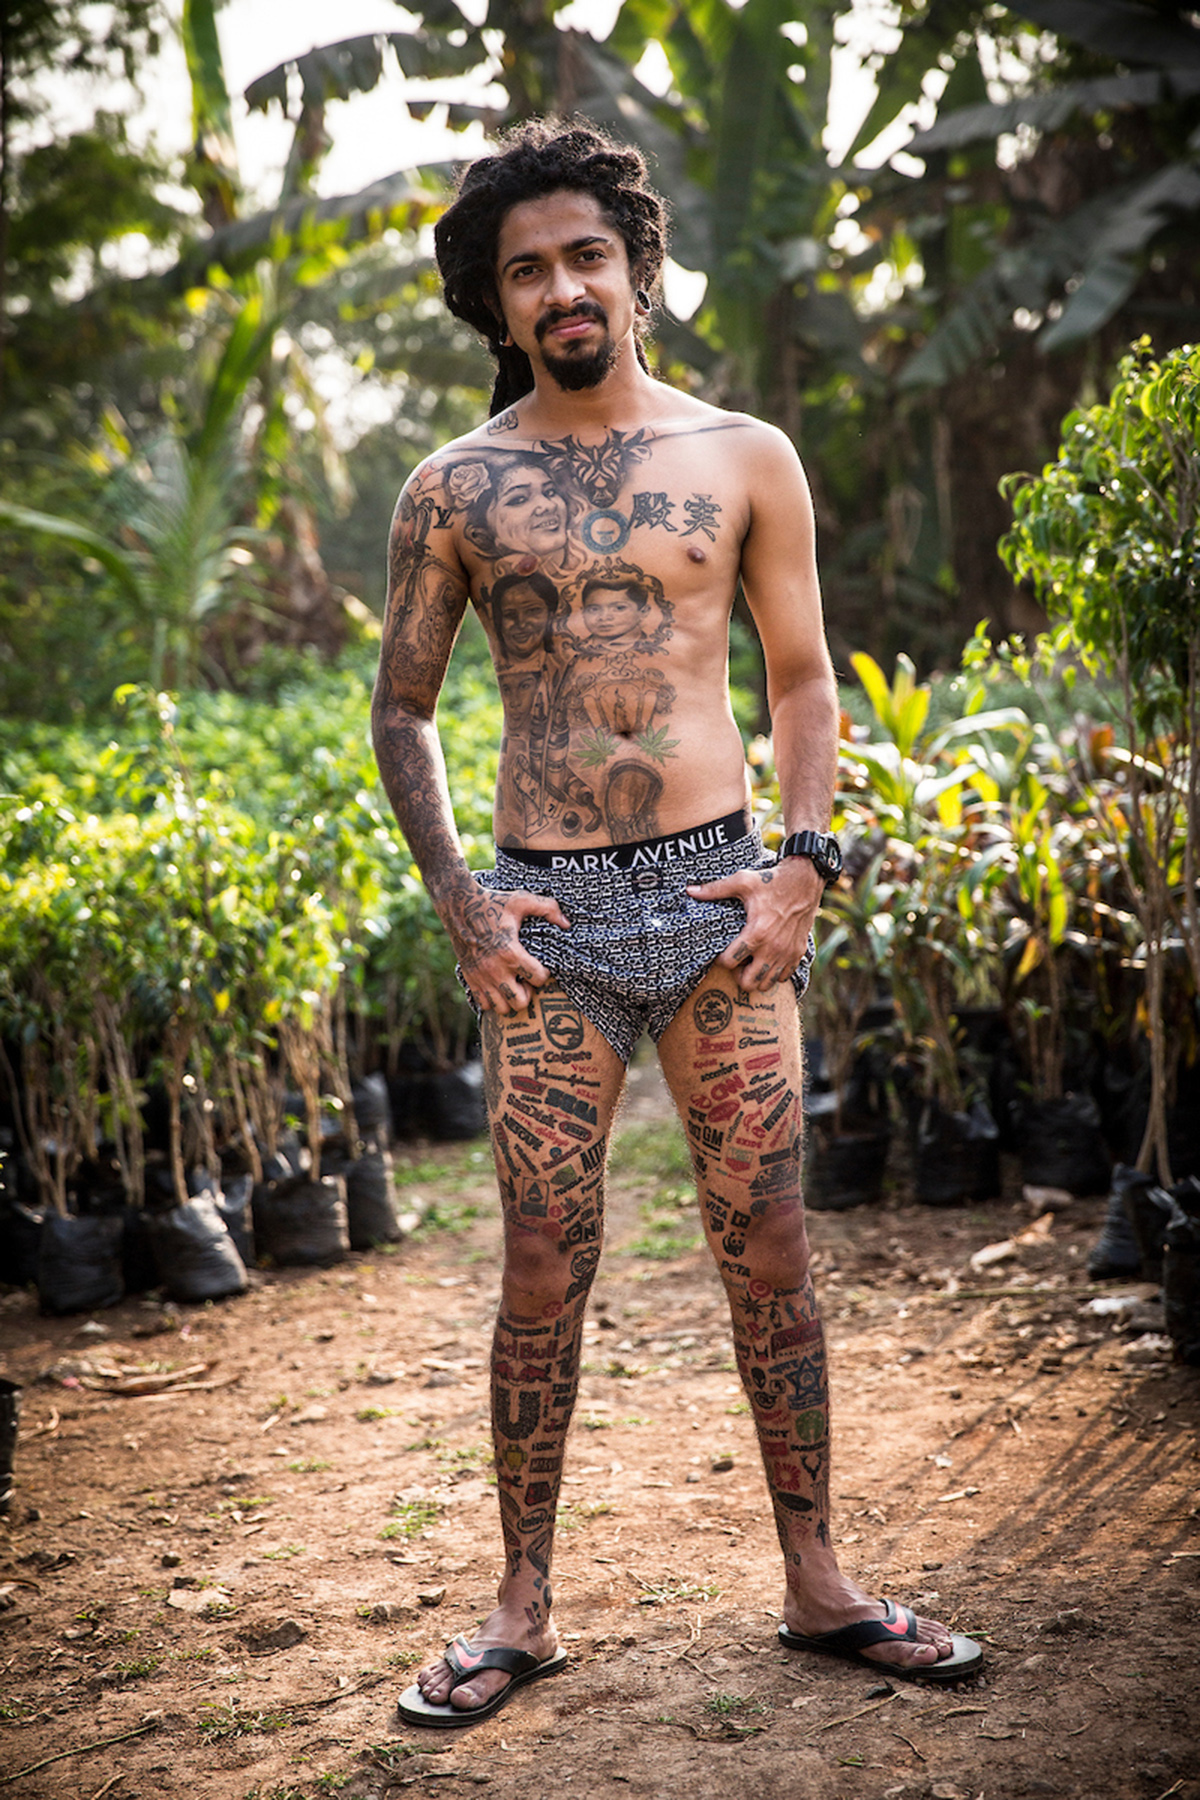 Jason George, 25, has over 400 logo tattoos (Picture: Cover Asia Press/Faisal Magray)